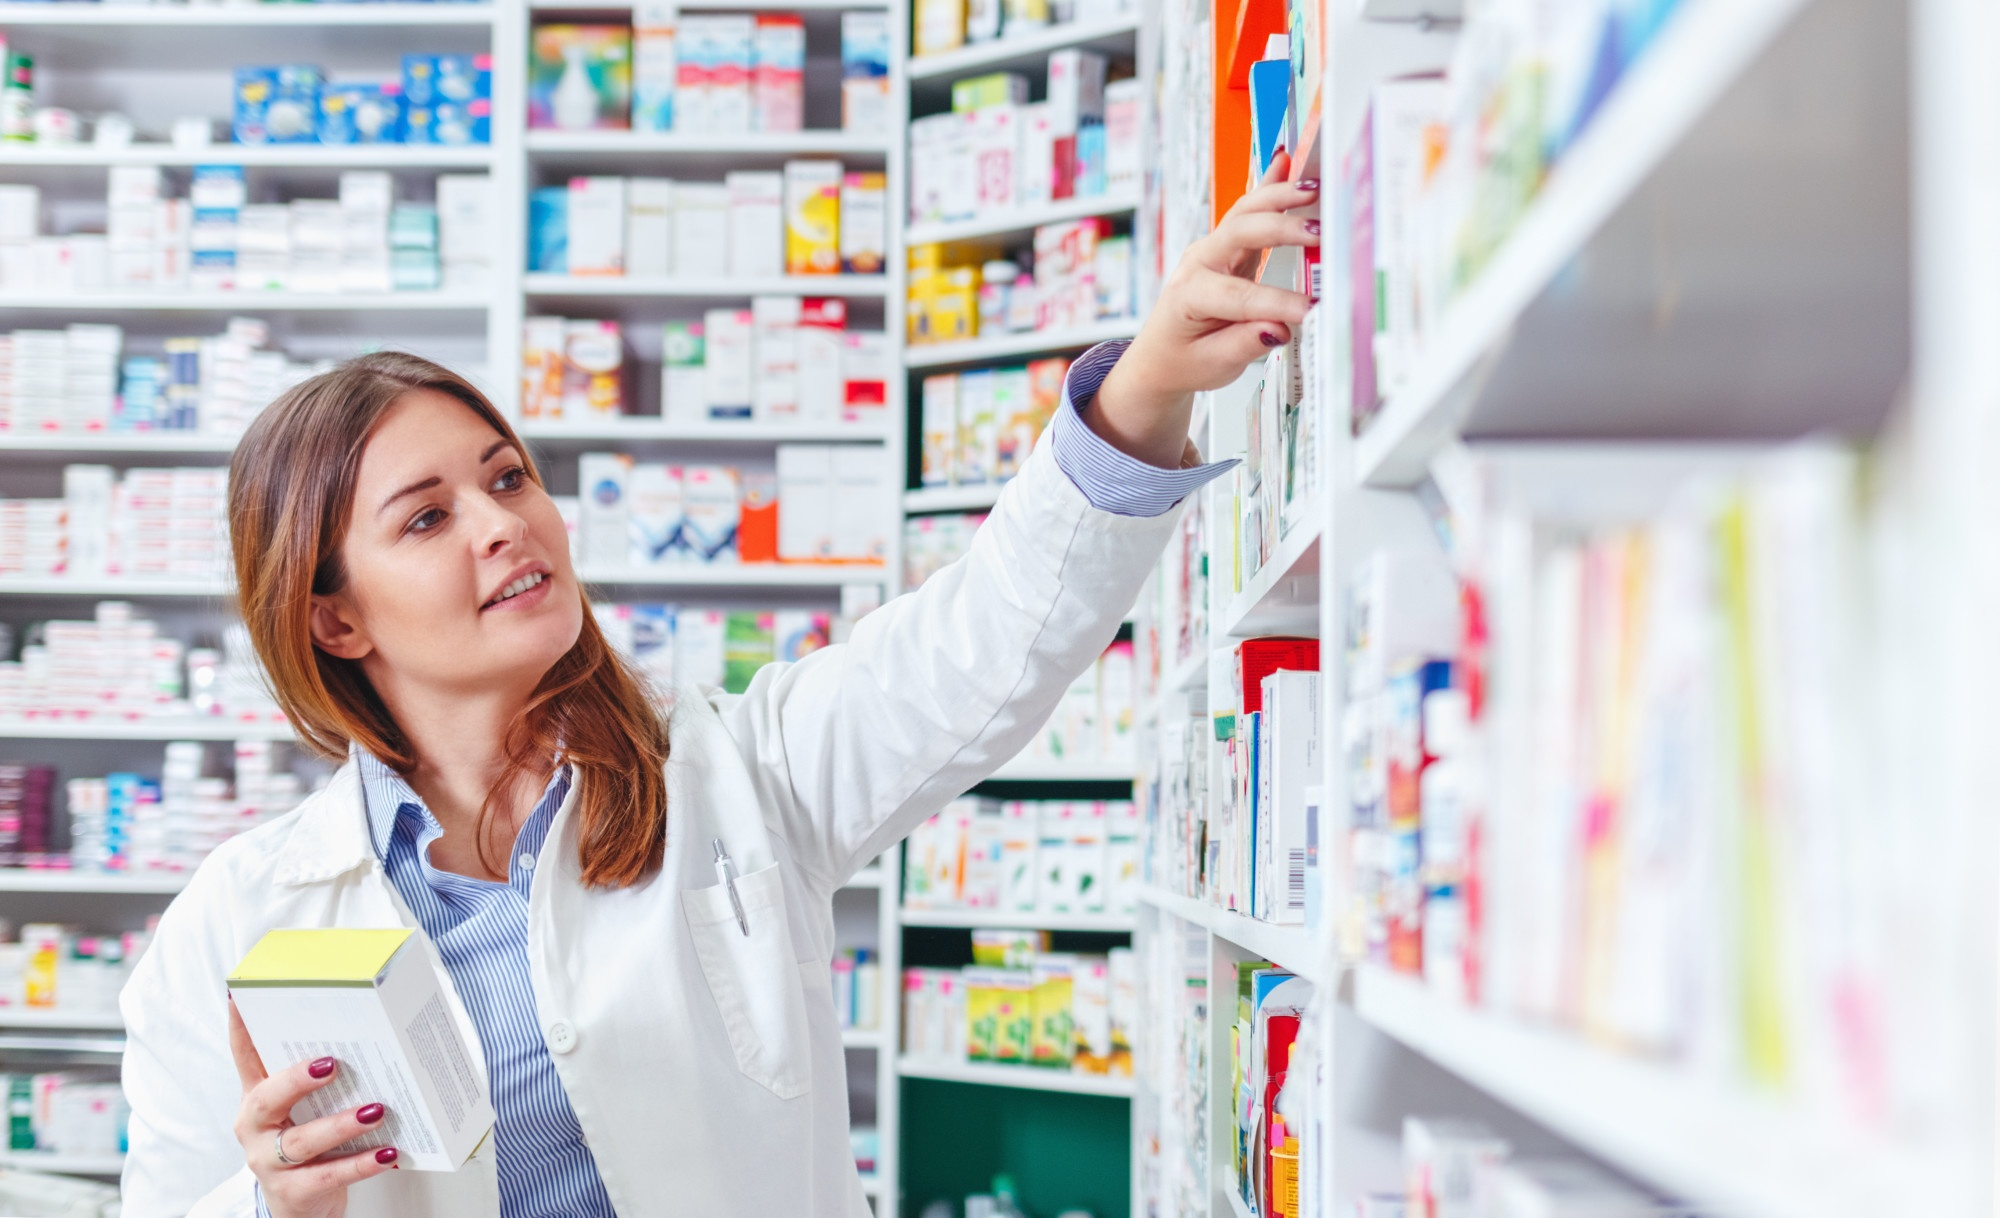 Are Drug Prices Fair? What to Look for at Your Local Pharmacy